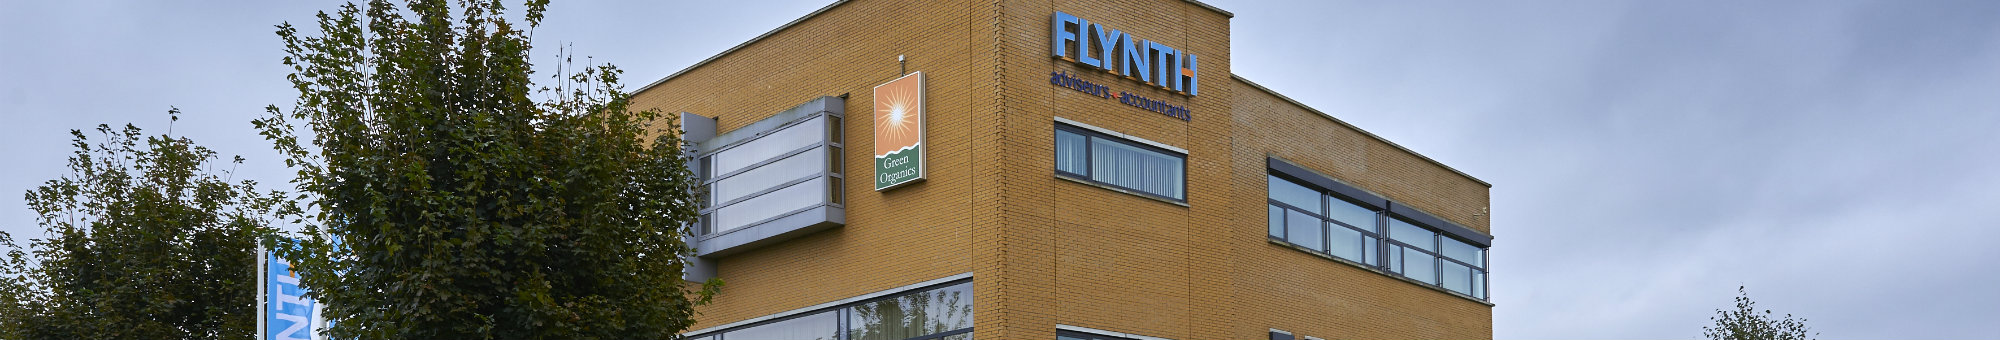 Flynth adviseurs en accountants in Dronten